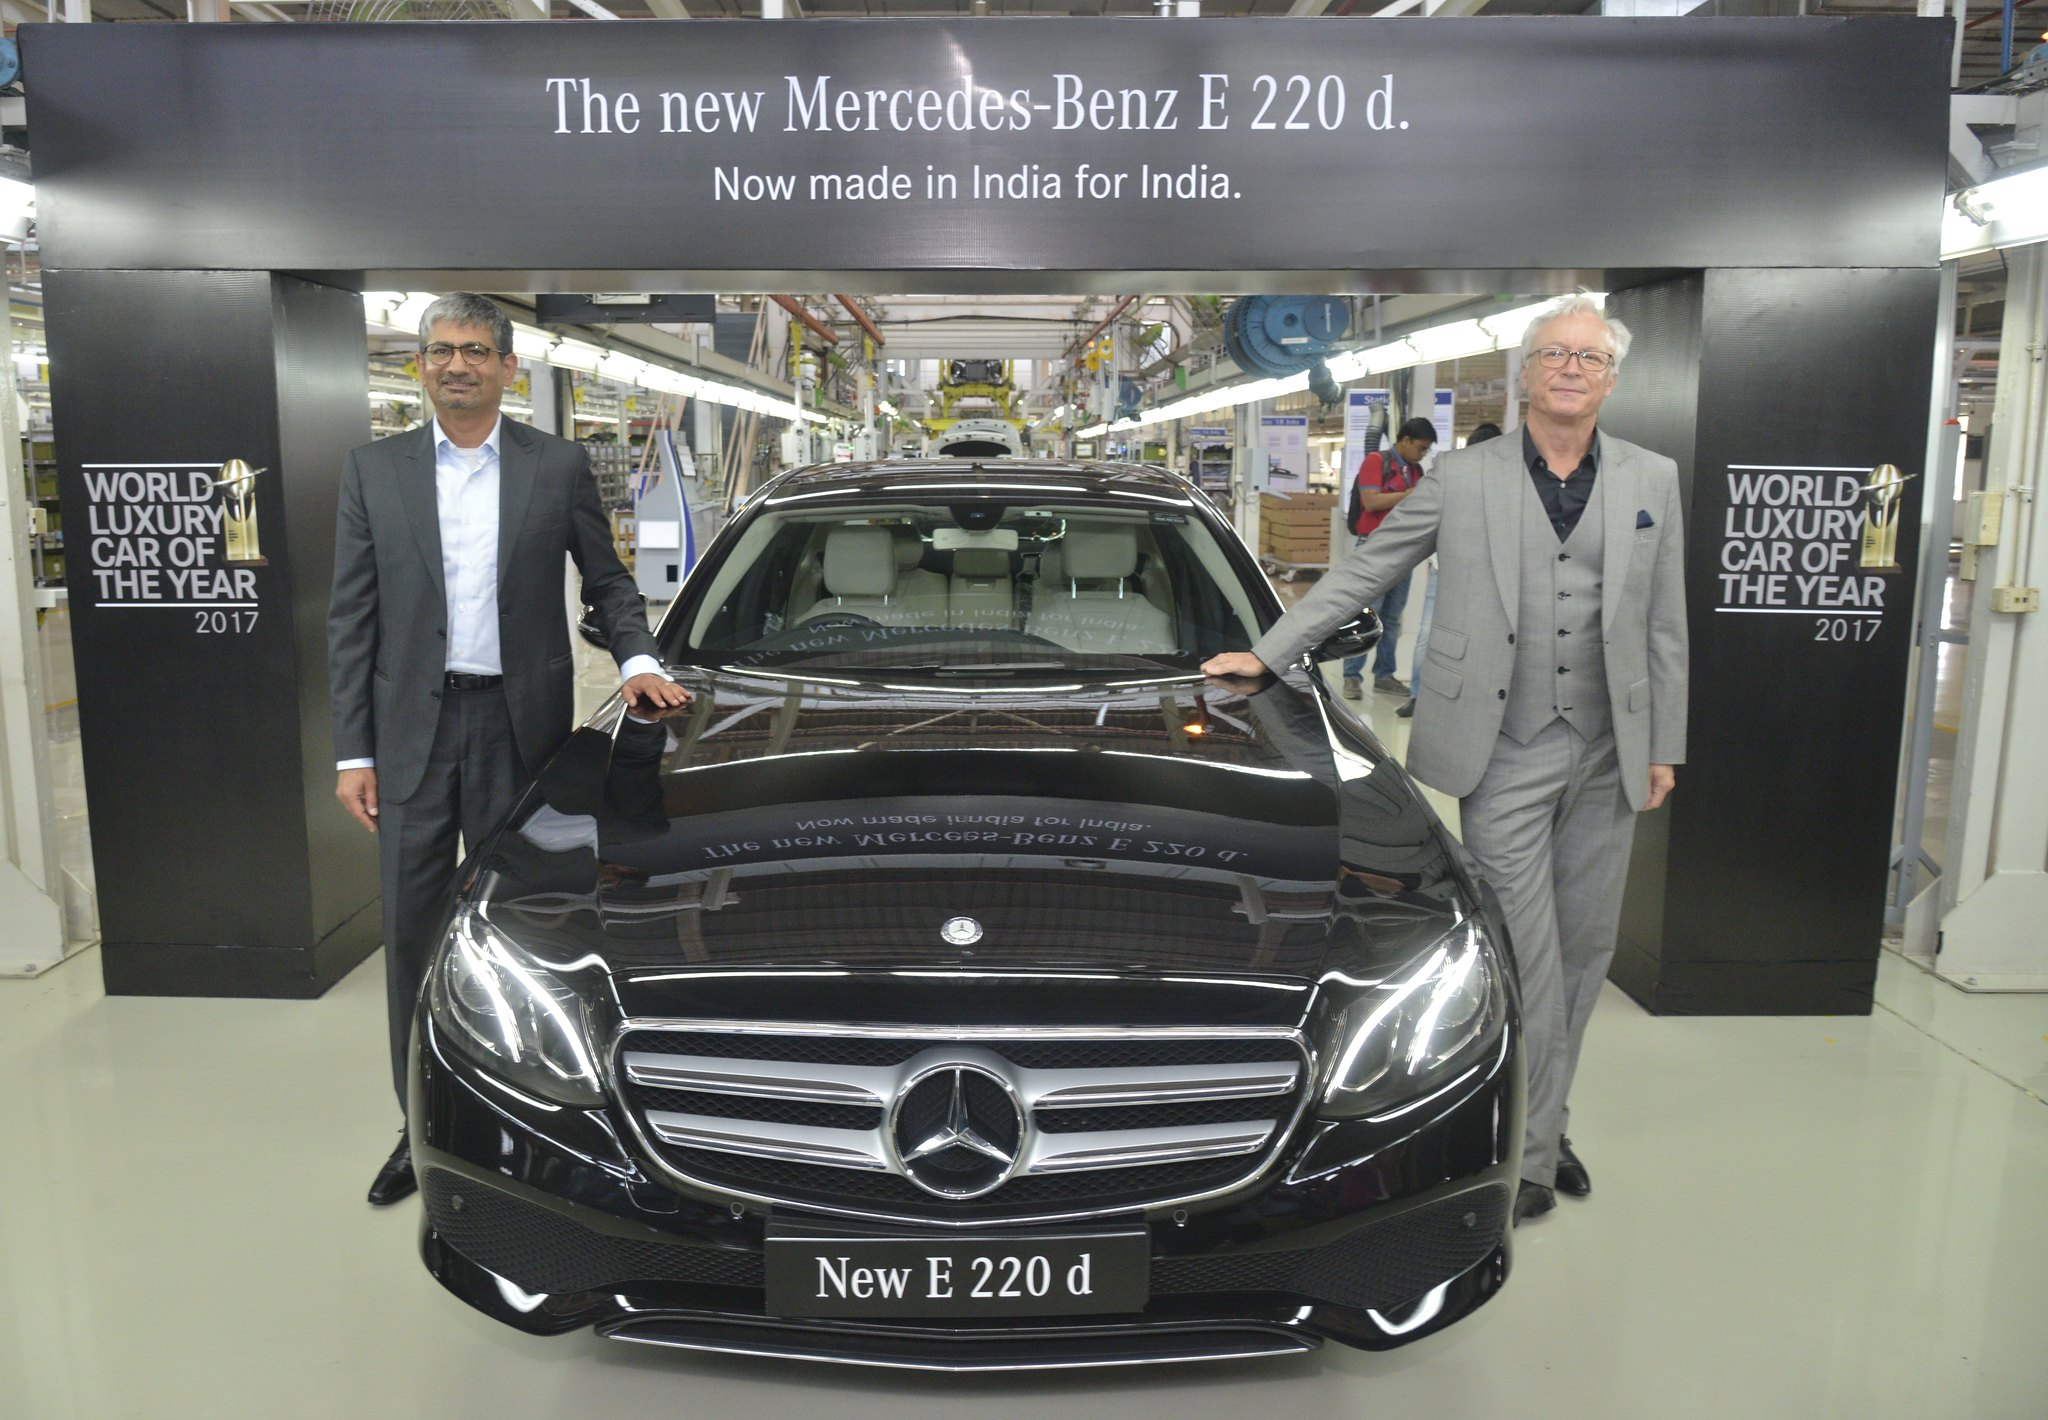 Photo 3 L-R Mr. Roland Folger, MD & CEO, Mercedes-Benz and Mr. Piyush Arora, Executive Director-Operations, Mercedes-Benz India  at the roll out of the all new E-Class 220 d in Chakan near Pune